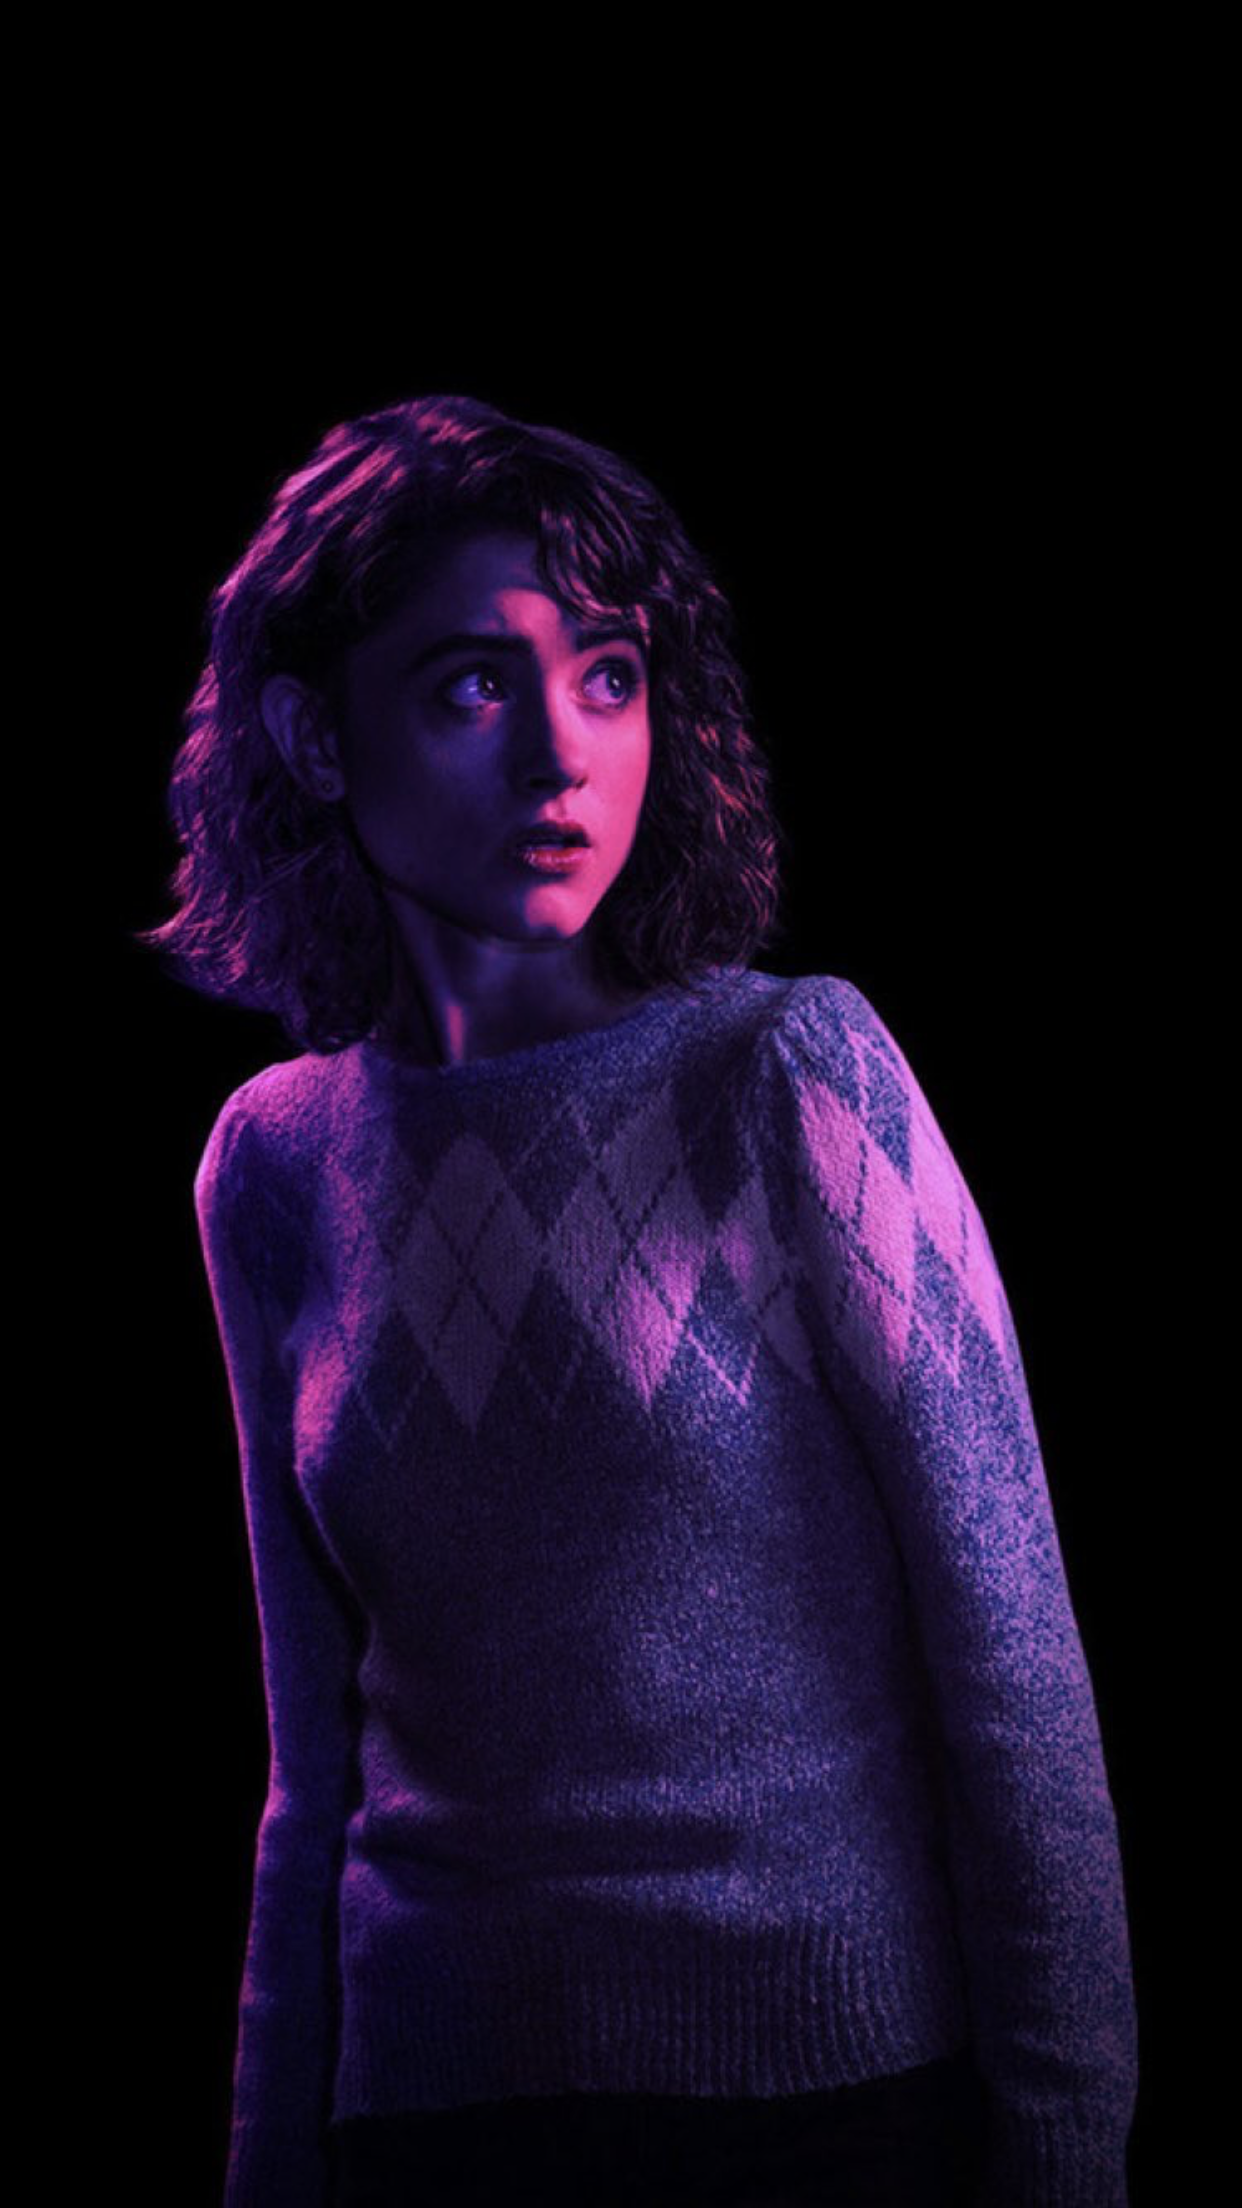 Hacked Natalia Dyer nude (76 photos), Tits, Cleavage, Selfie, swimsuit 2015